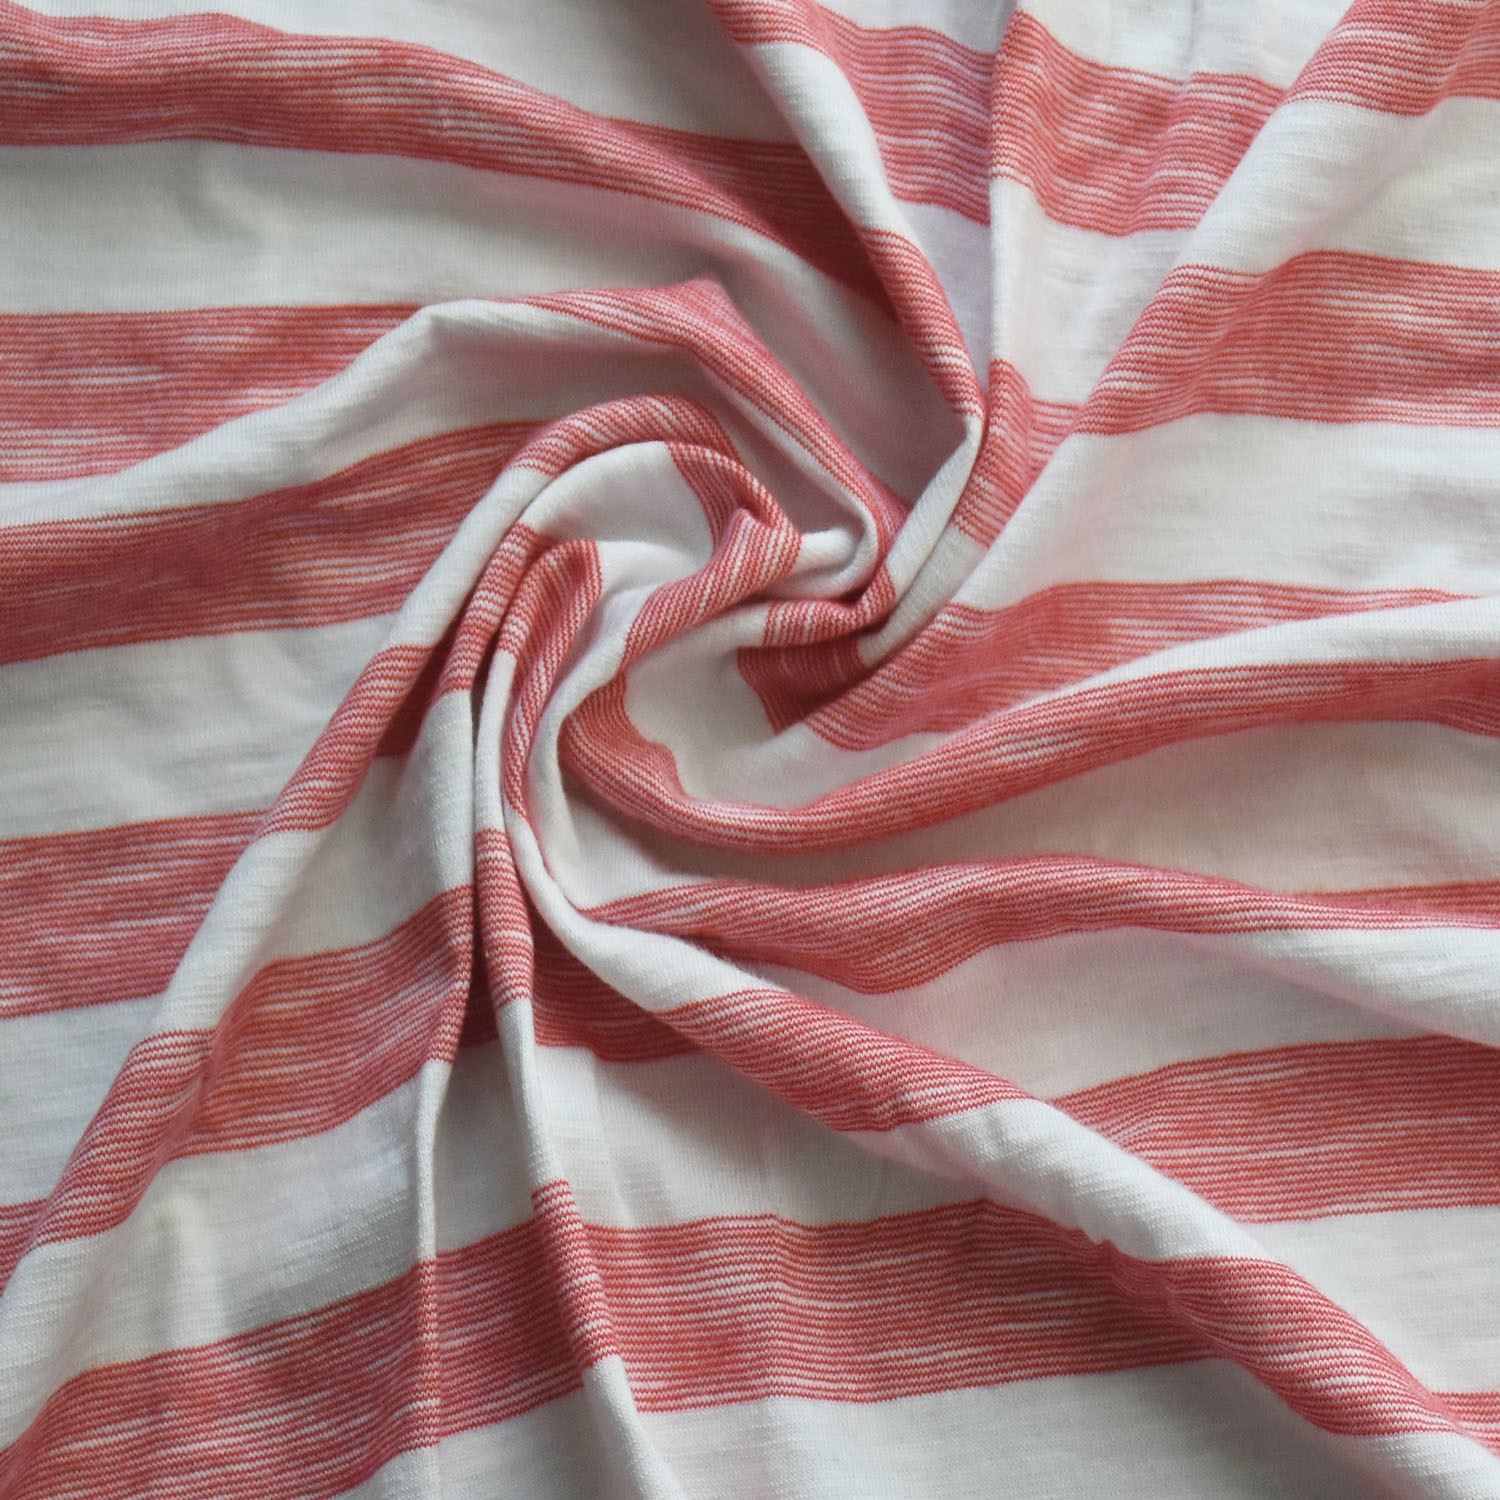 Cotton/Rayon/Spandex Yarn Dye Stripe Fabric for Clothing